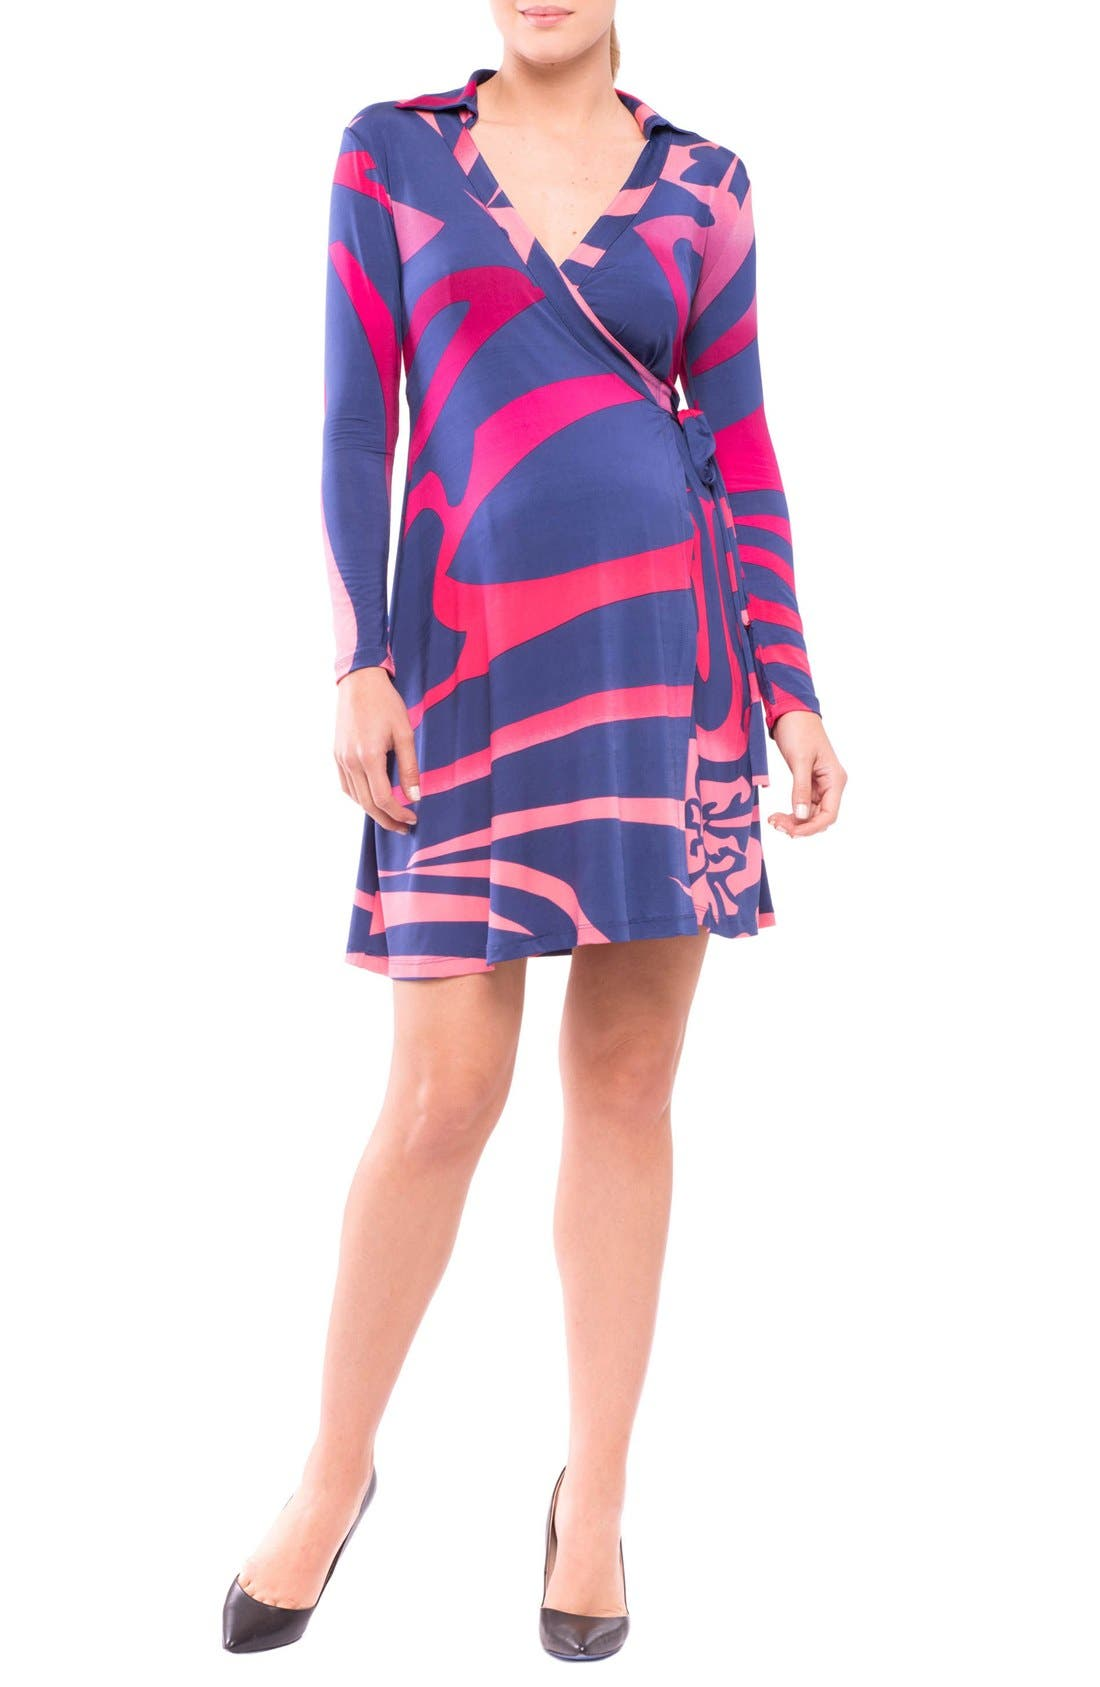 Pink and Blue Maternity Dress